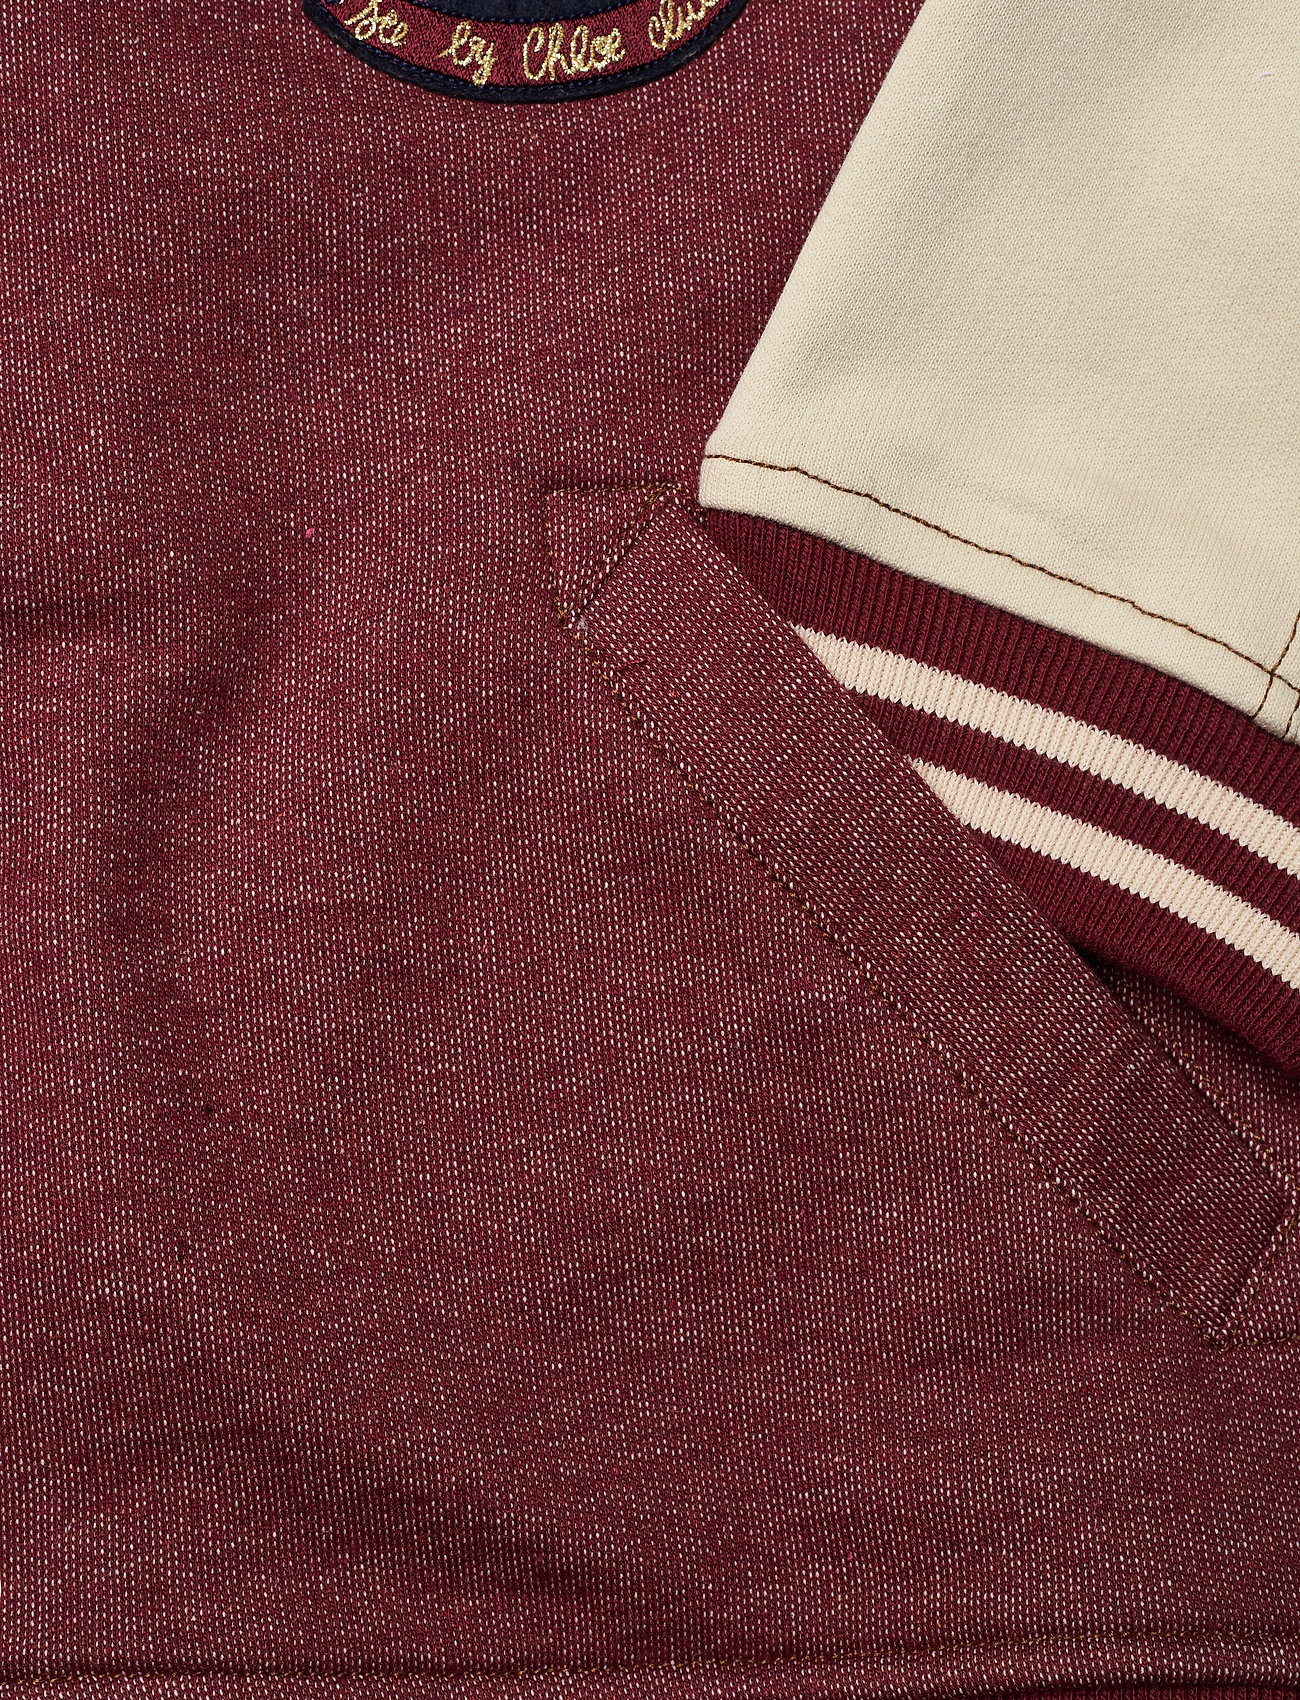 See by Chloé - JACKET - bomber jacks - red - white 1 - 3